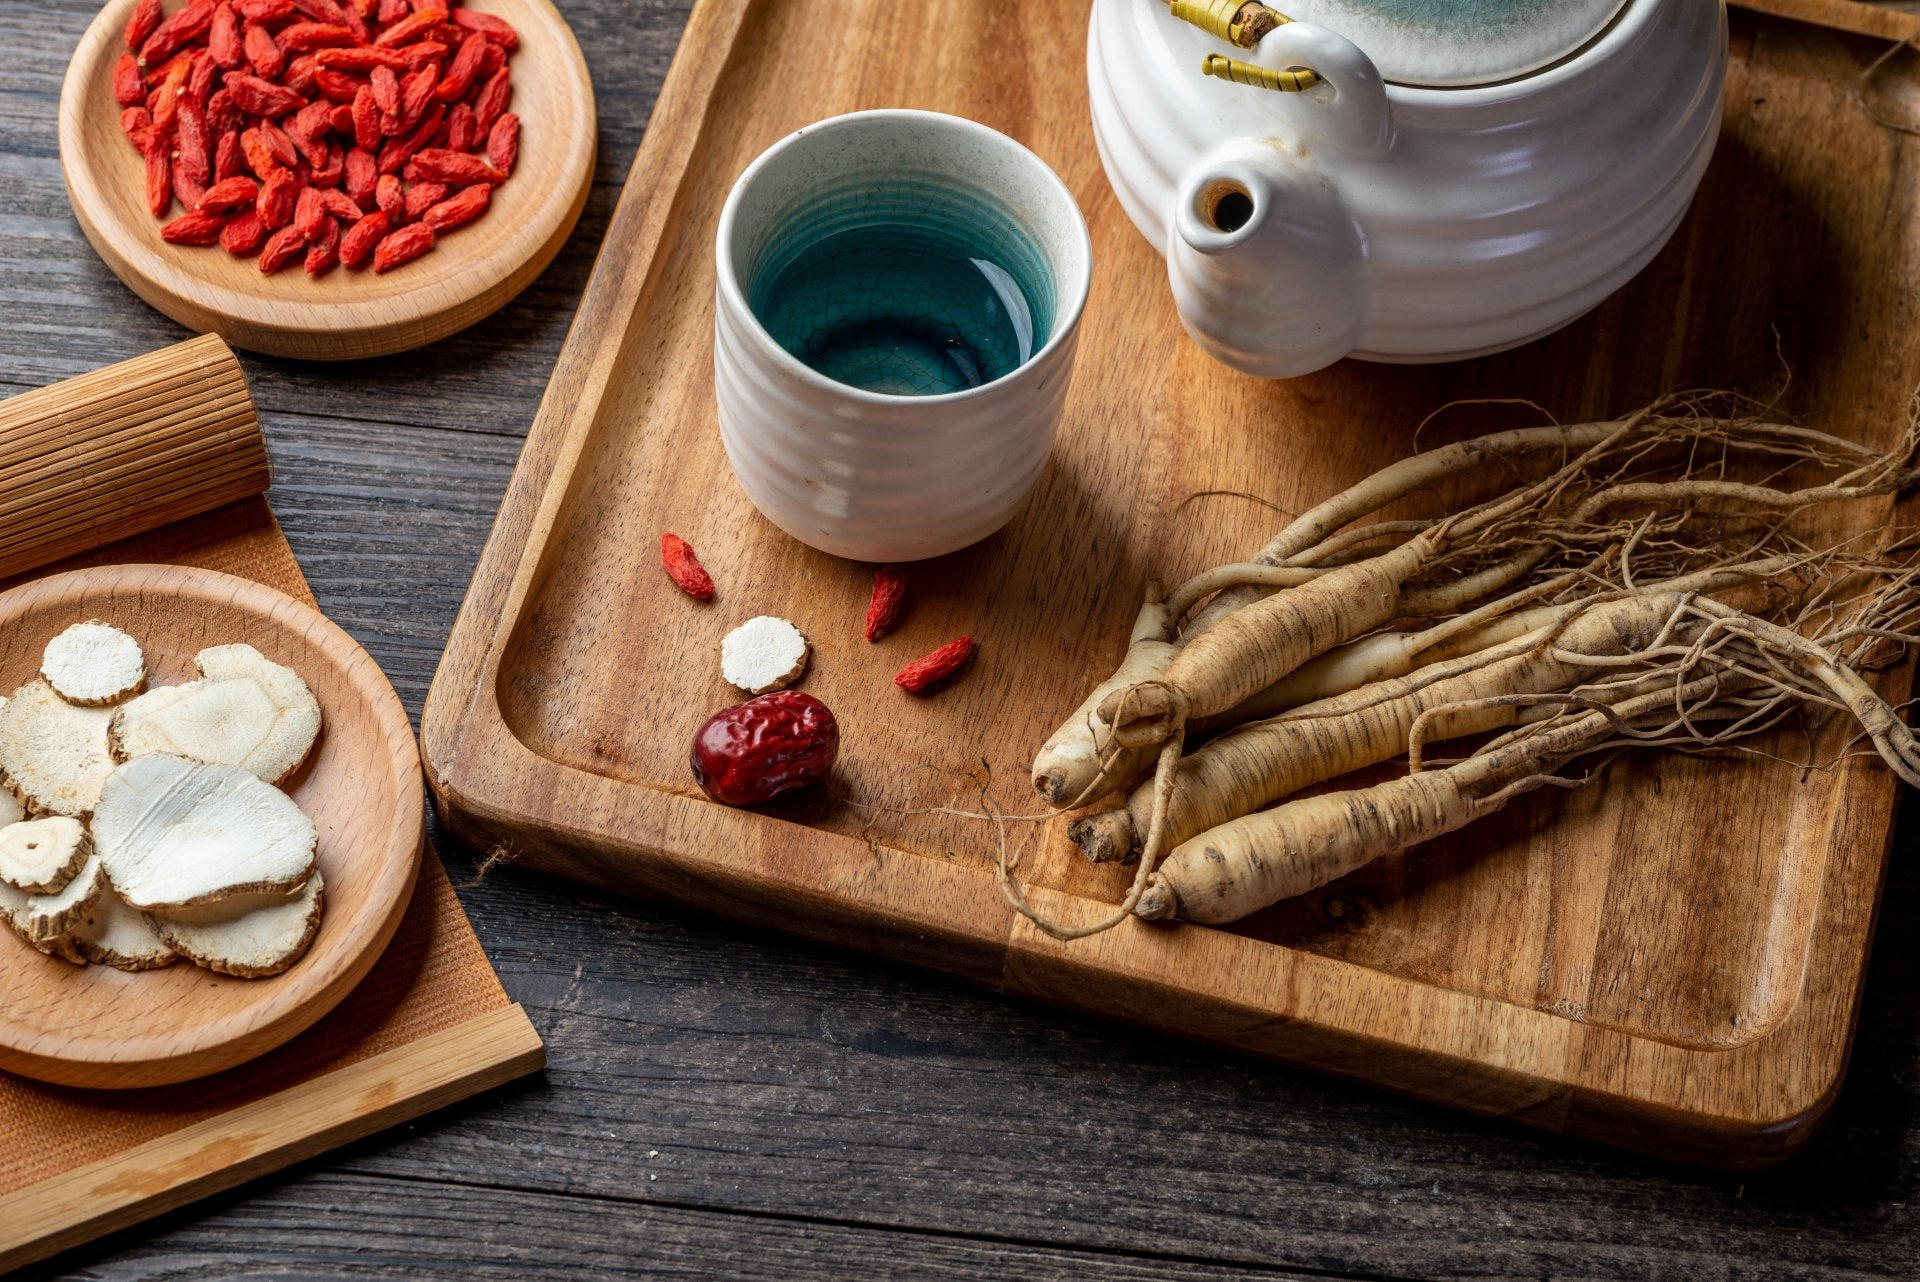 What is Ginseng? What is Red Ginseng